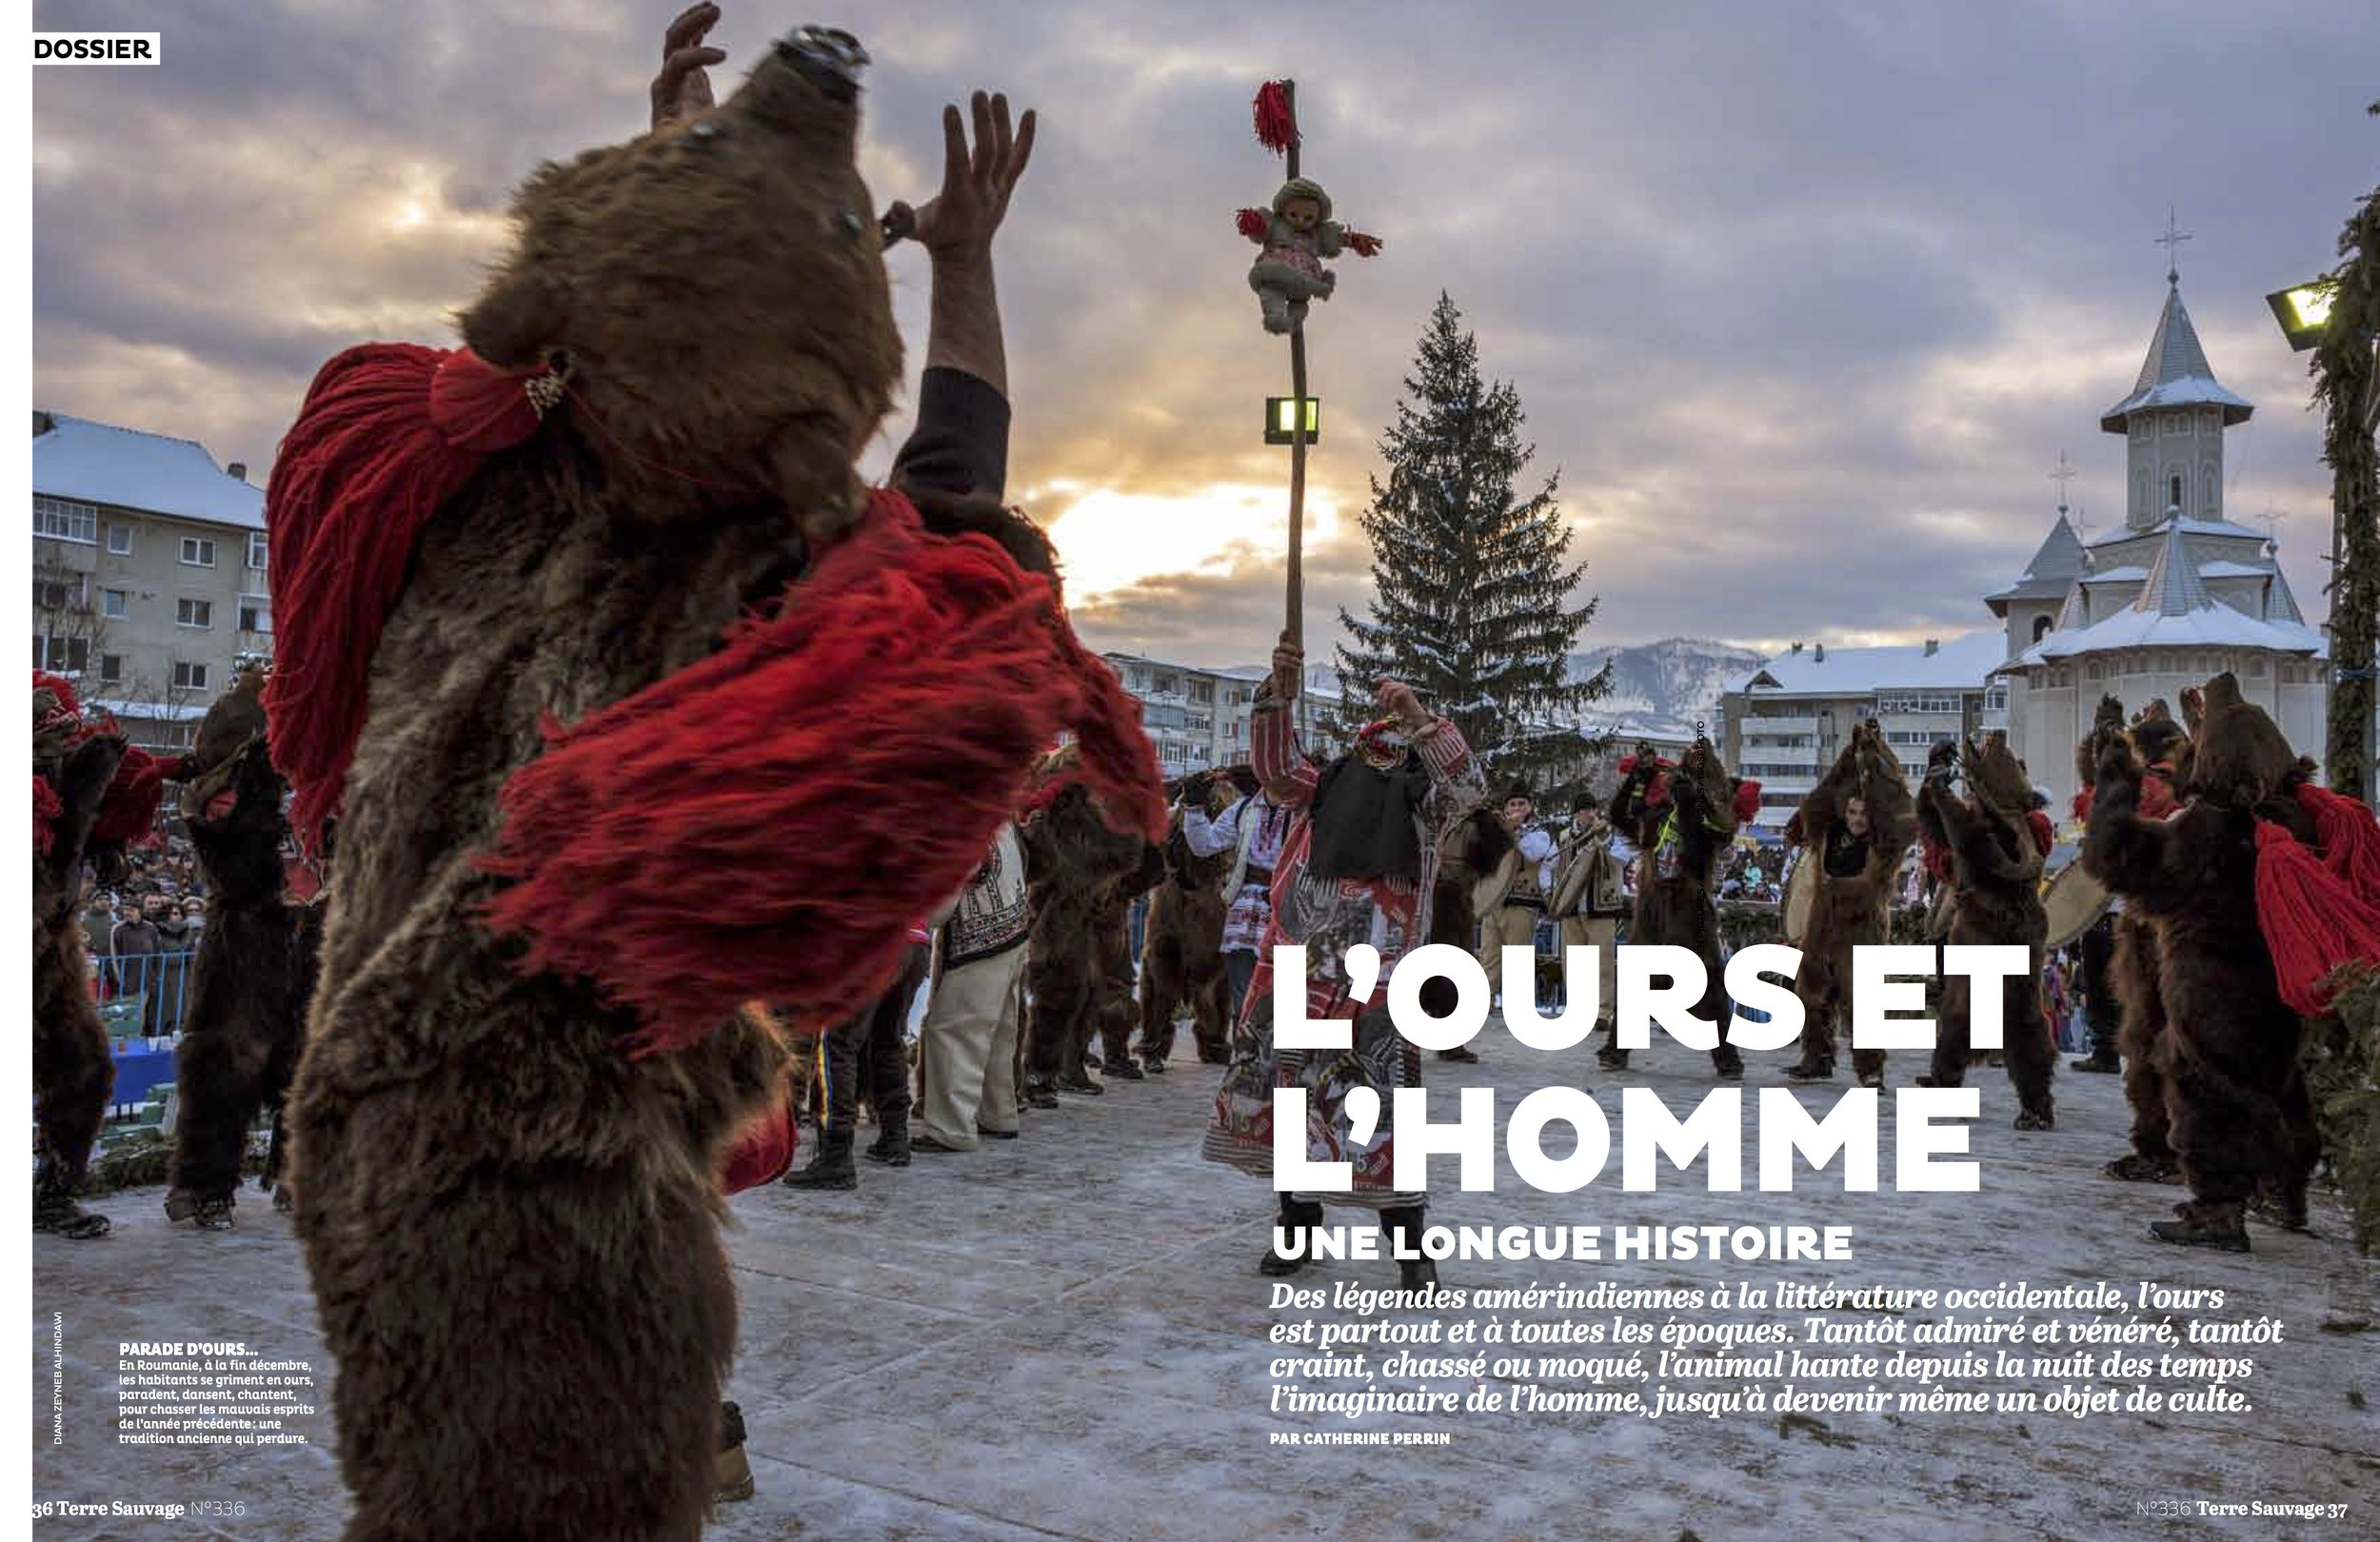 L'ours et l'homme  (The bear and the man)  | Terre Sauvage, No. 336, page 36-37, Jan 2017